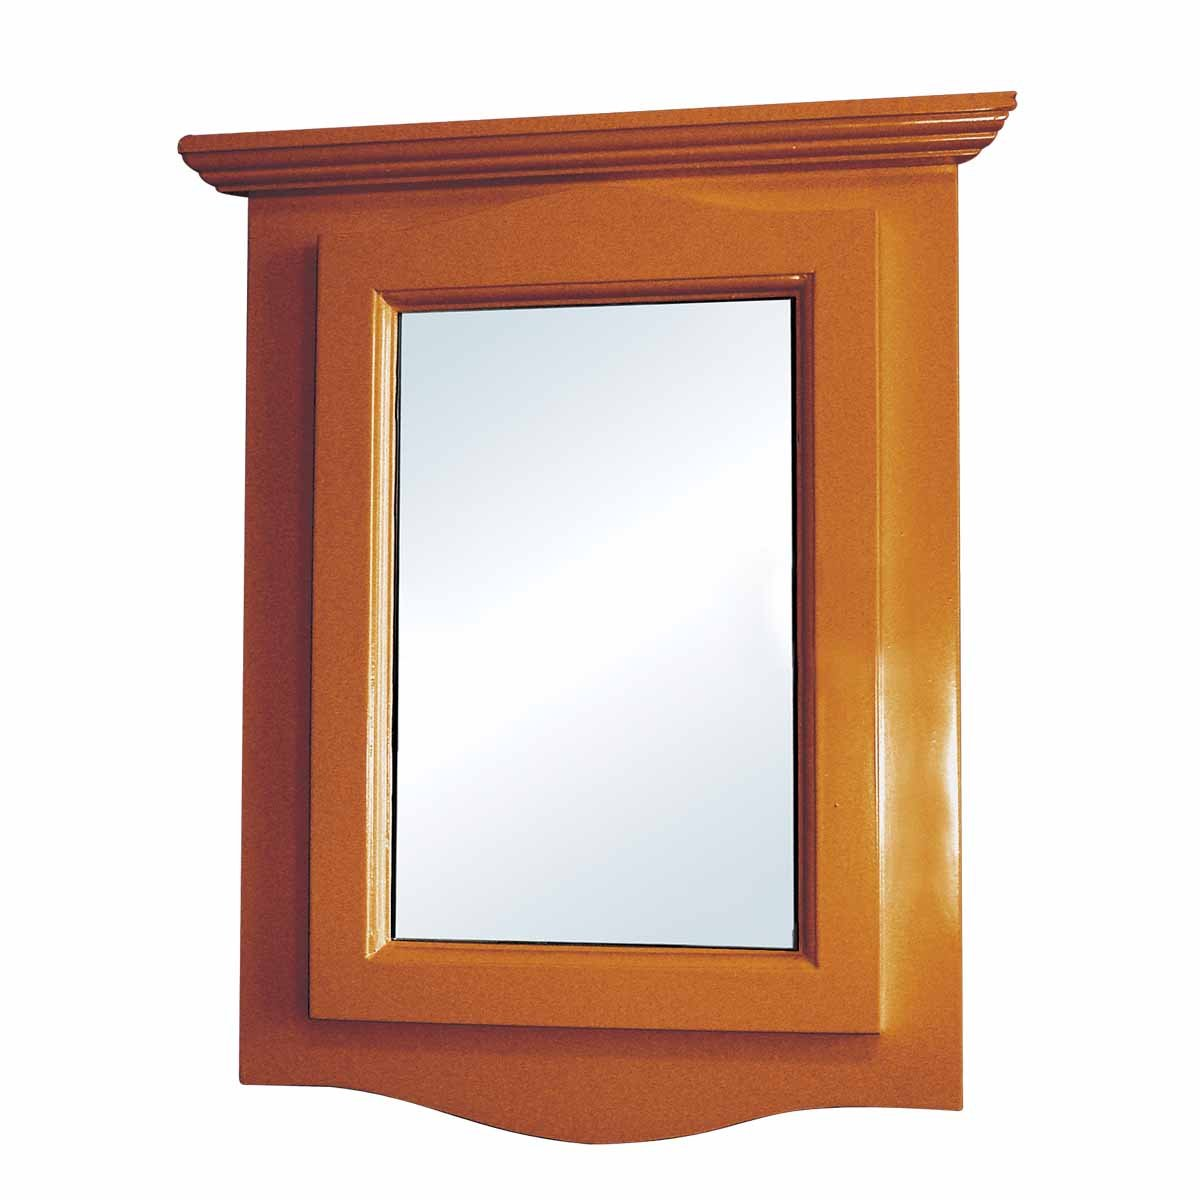 Amazon.com: Solid Wood Corner Medicine Cabinet Mirror Door Golden ...